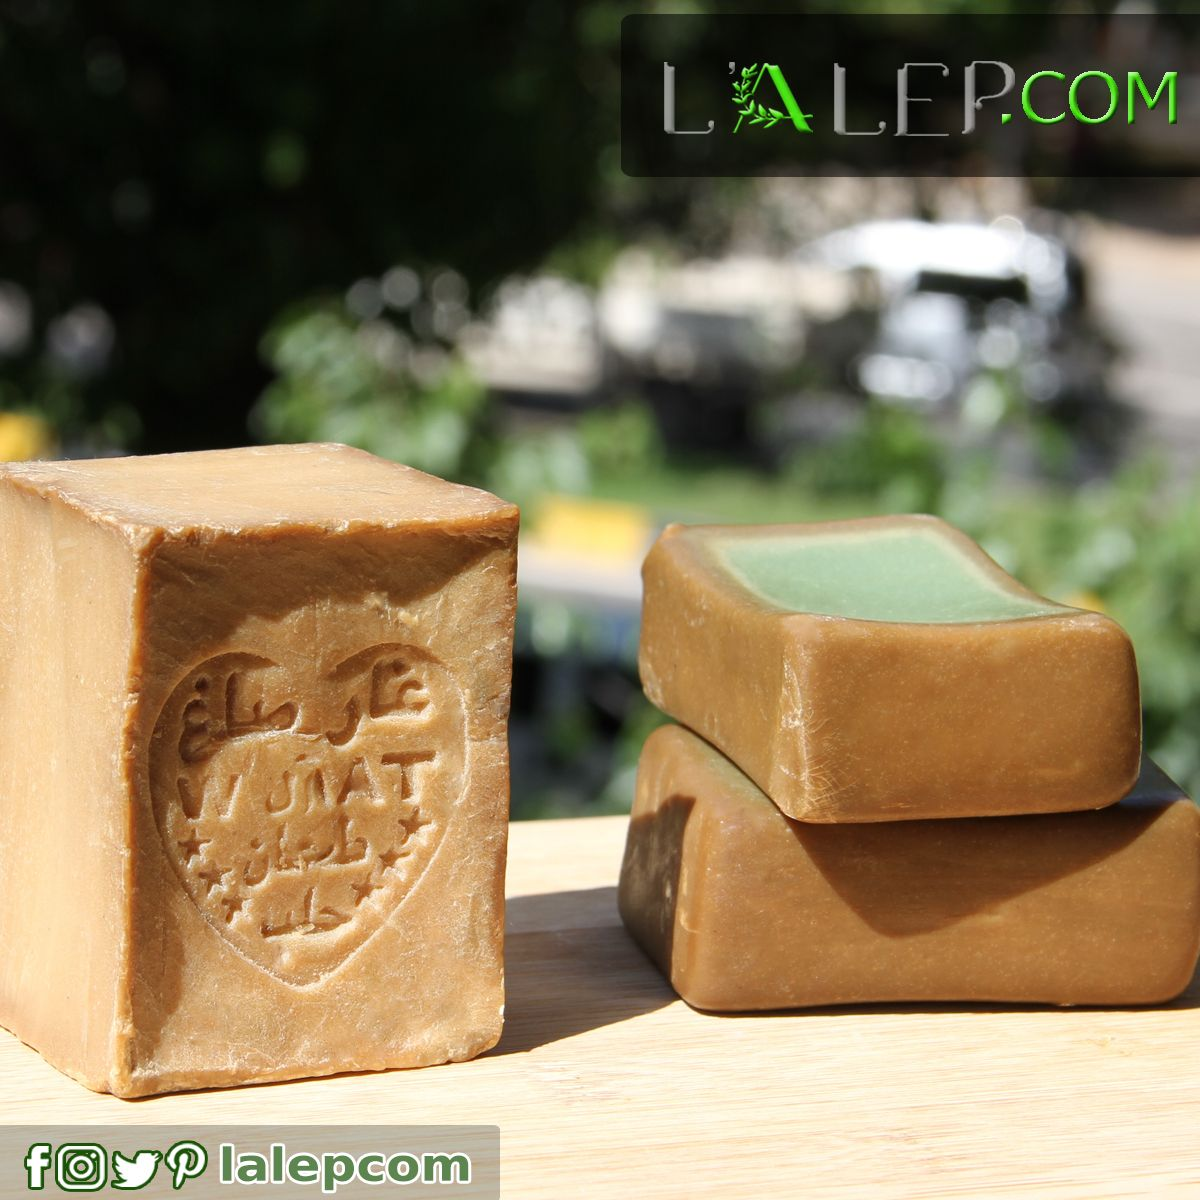 Lualep is a retail and wholesale online shop at factory prices